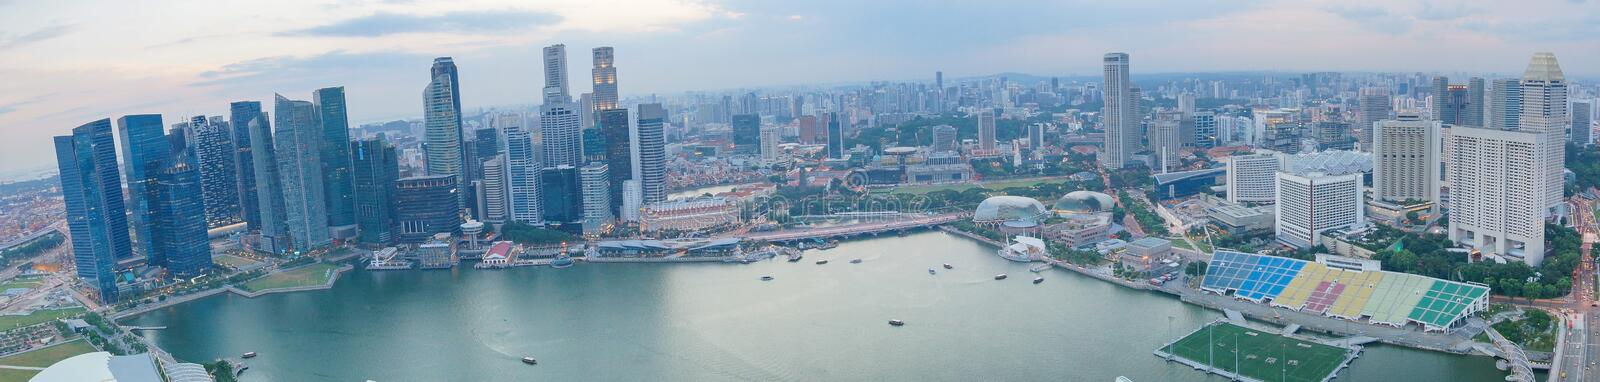 Singapore city panorama with Bay view. Modern Asian megalopolis. With skyscrapers and office buildings stock image